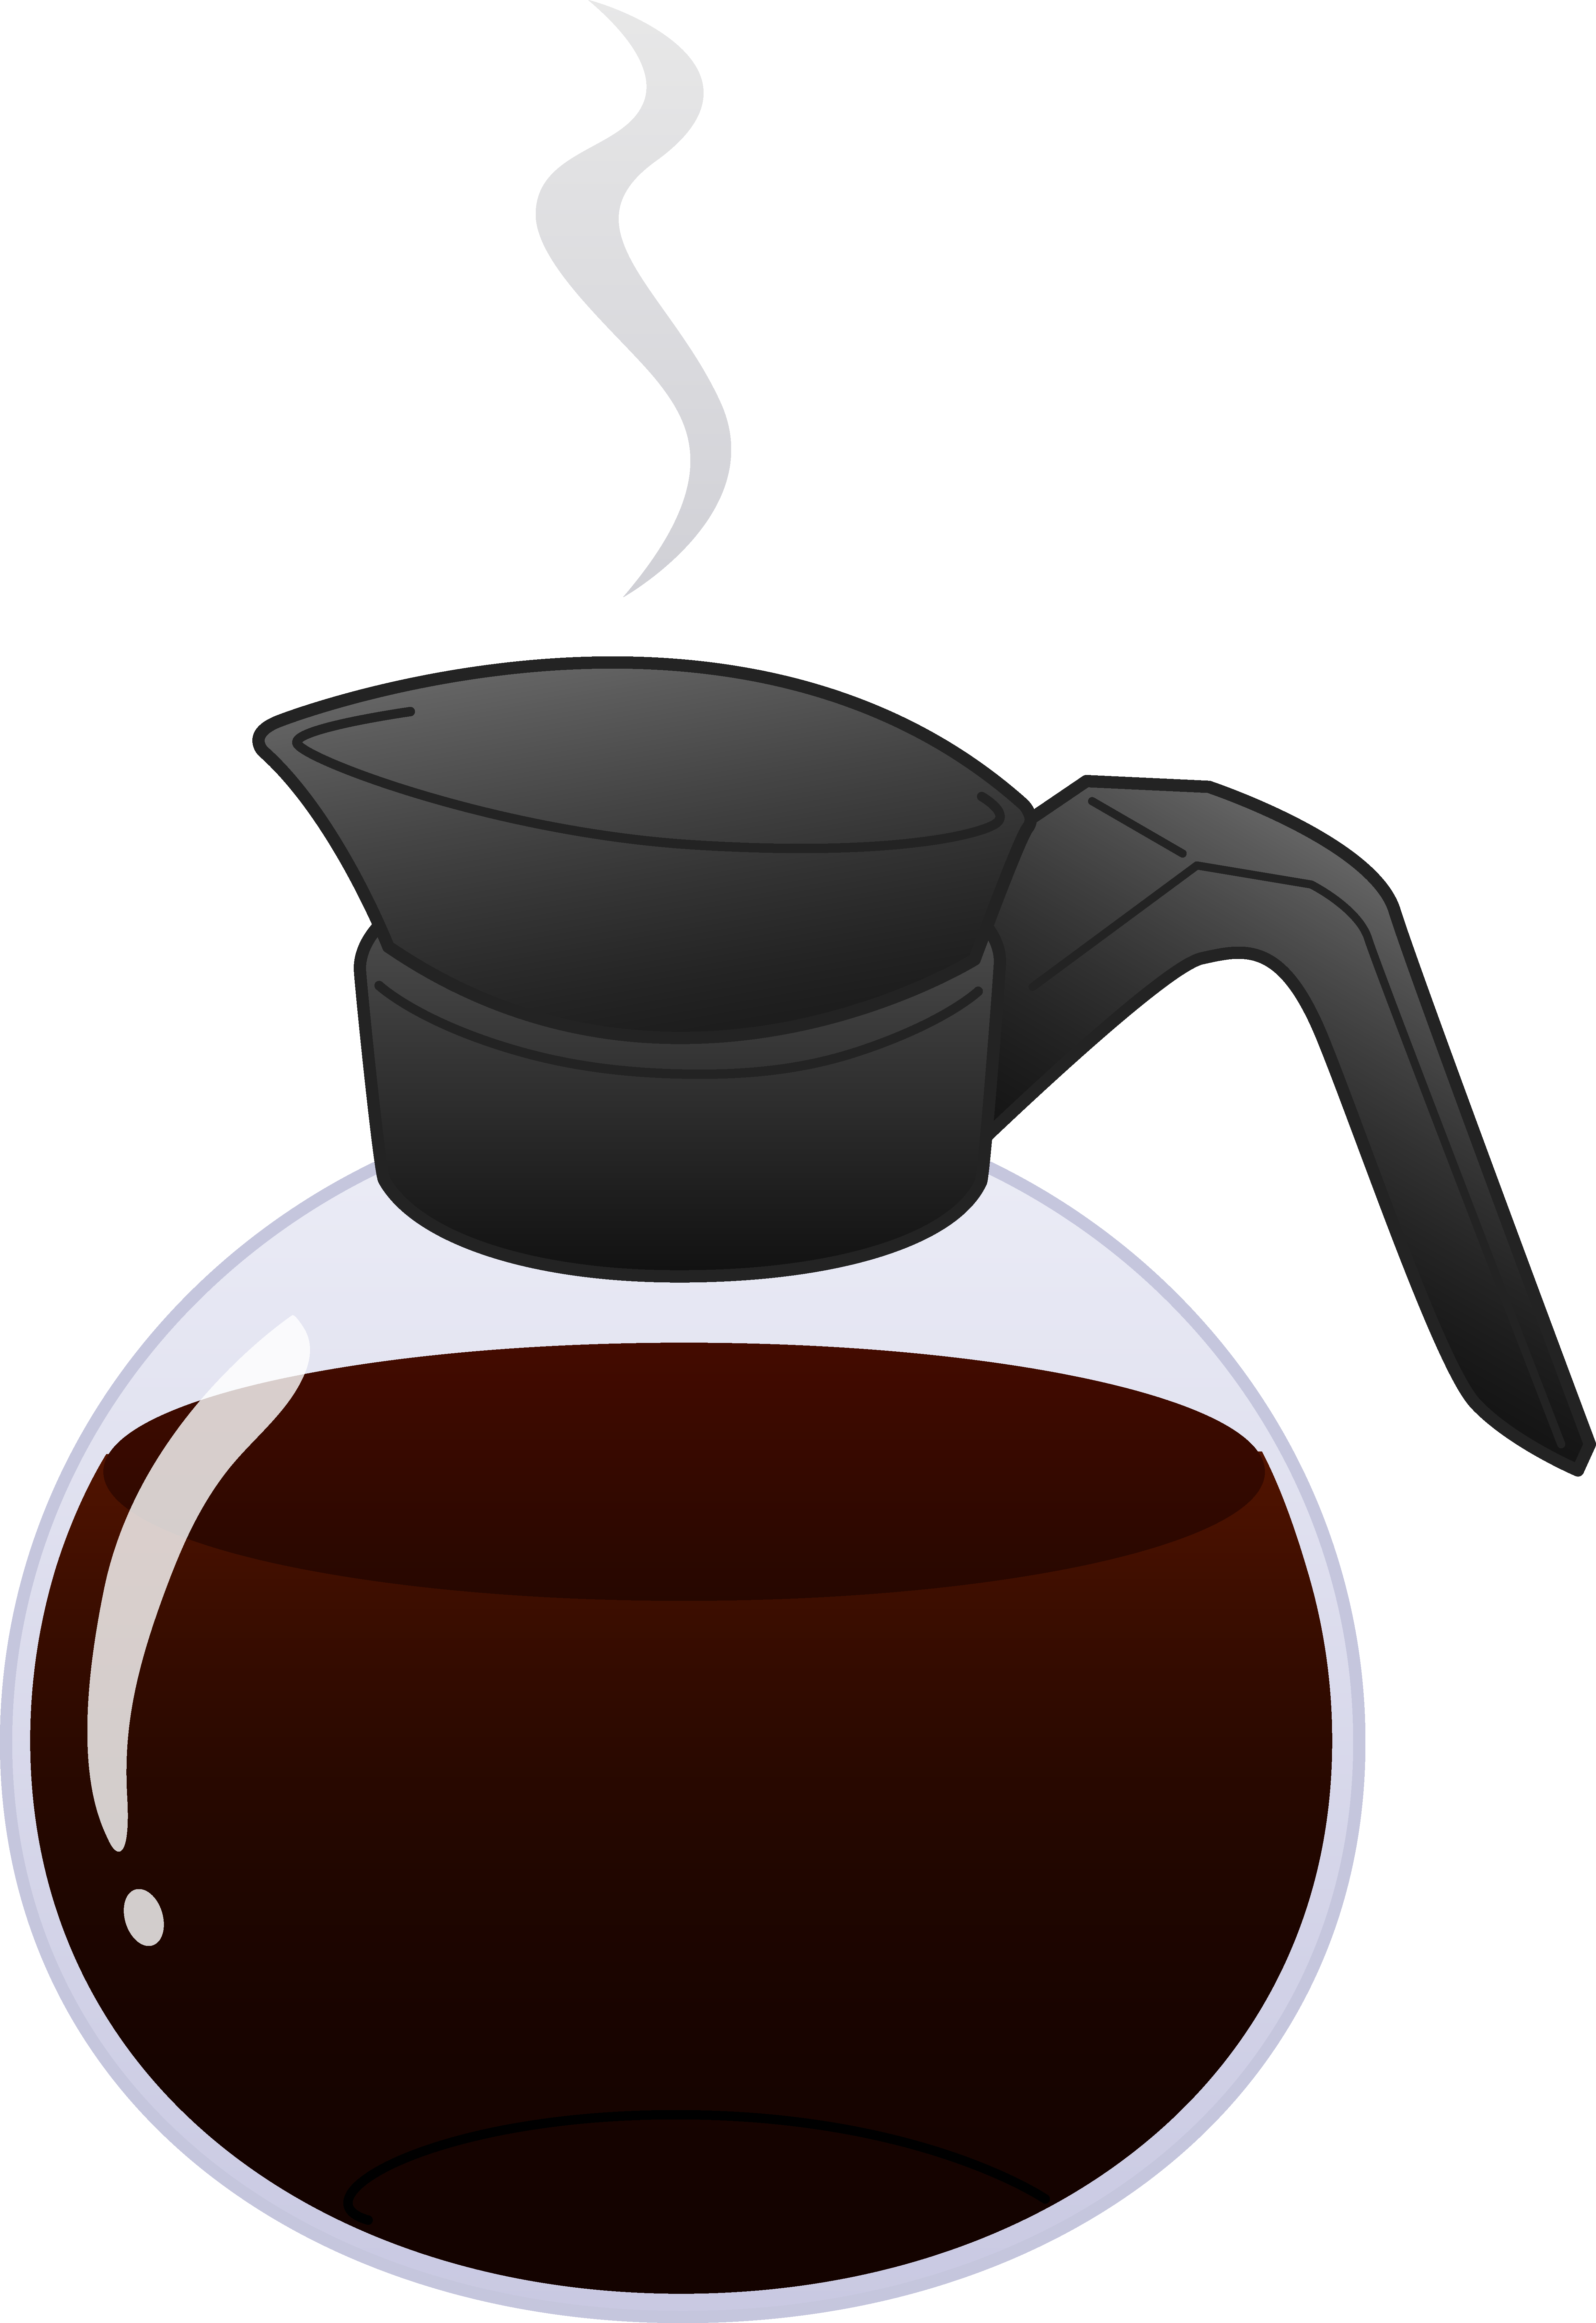 Coffee maker clipart.